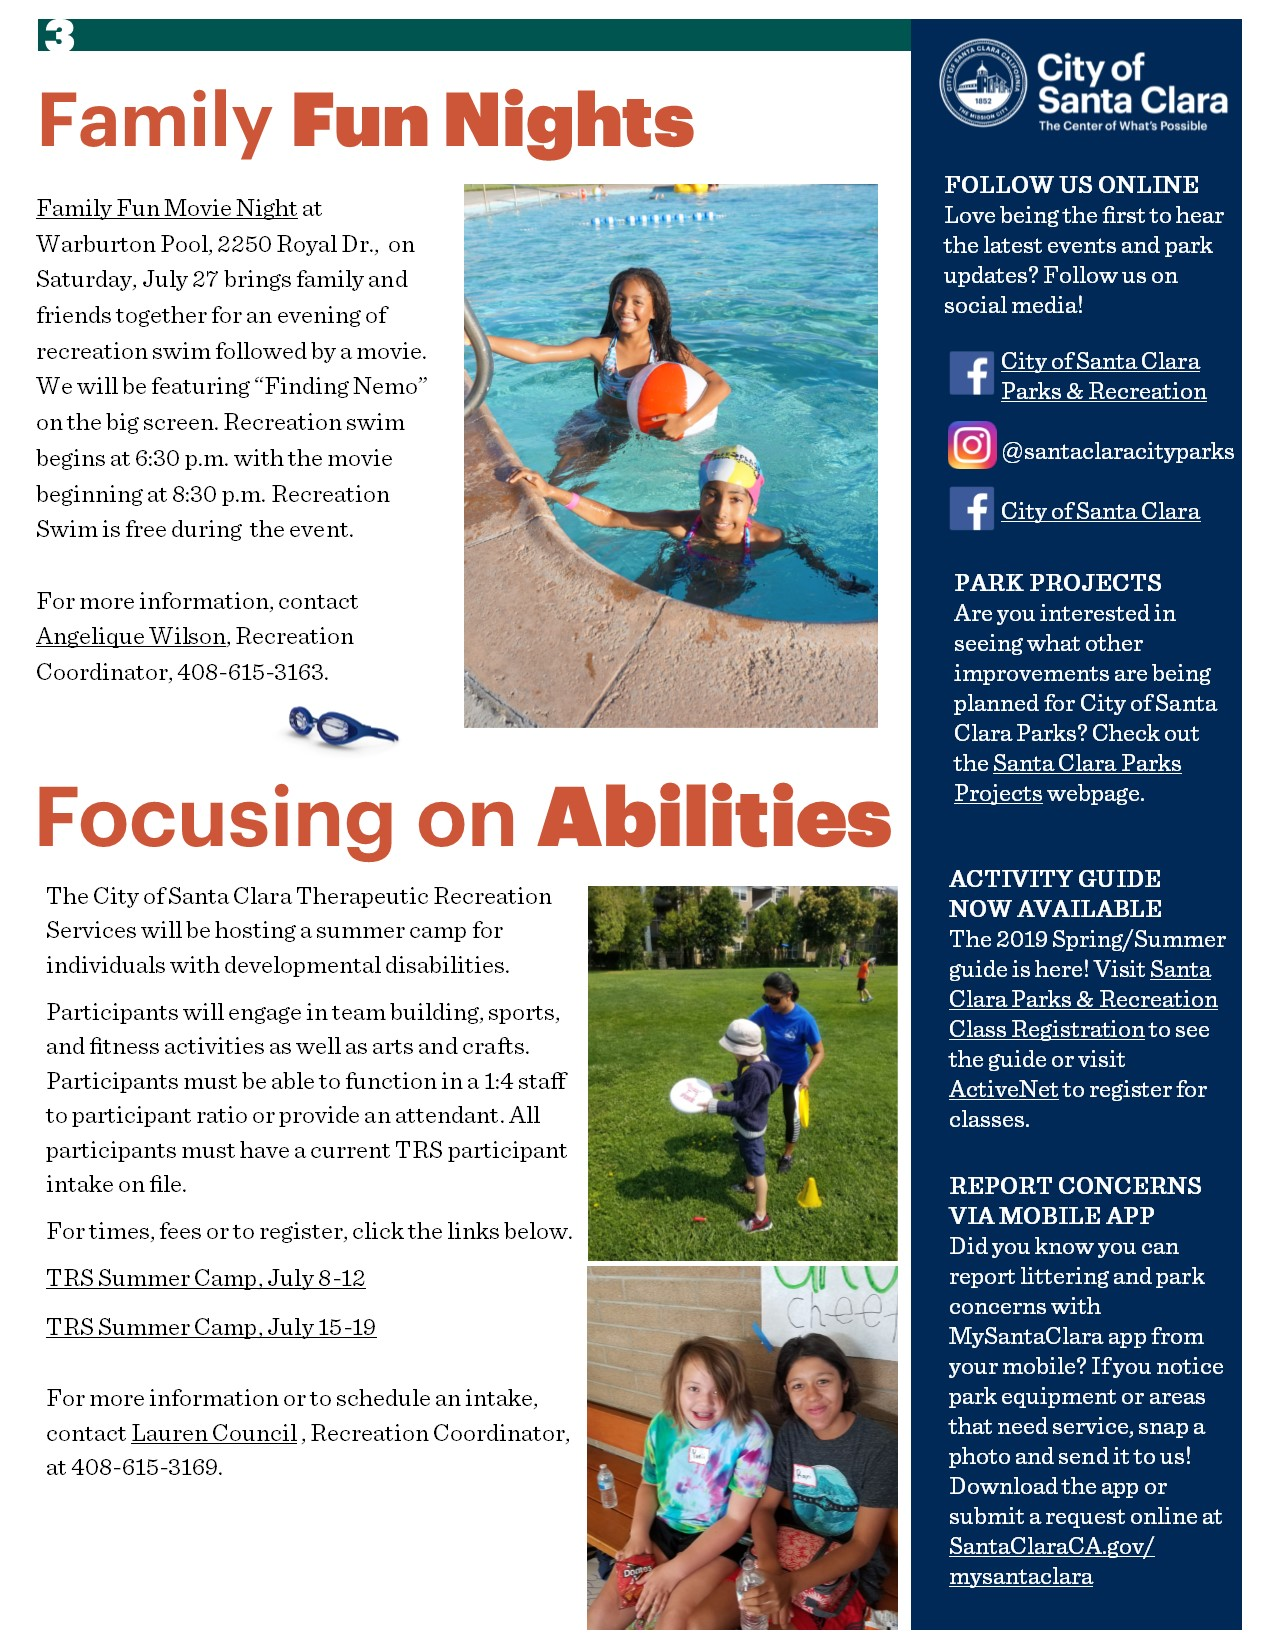 eNewsletter, Page 3 - July 2019